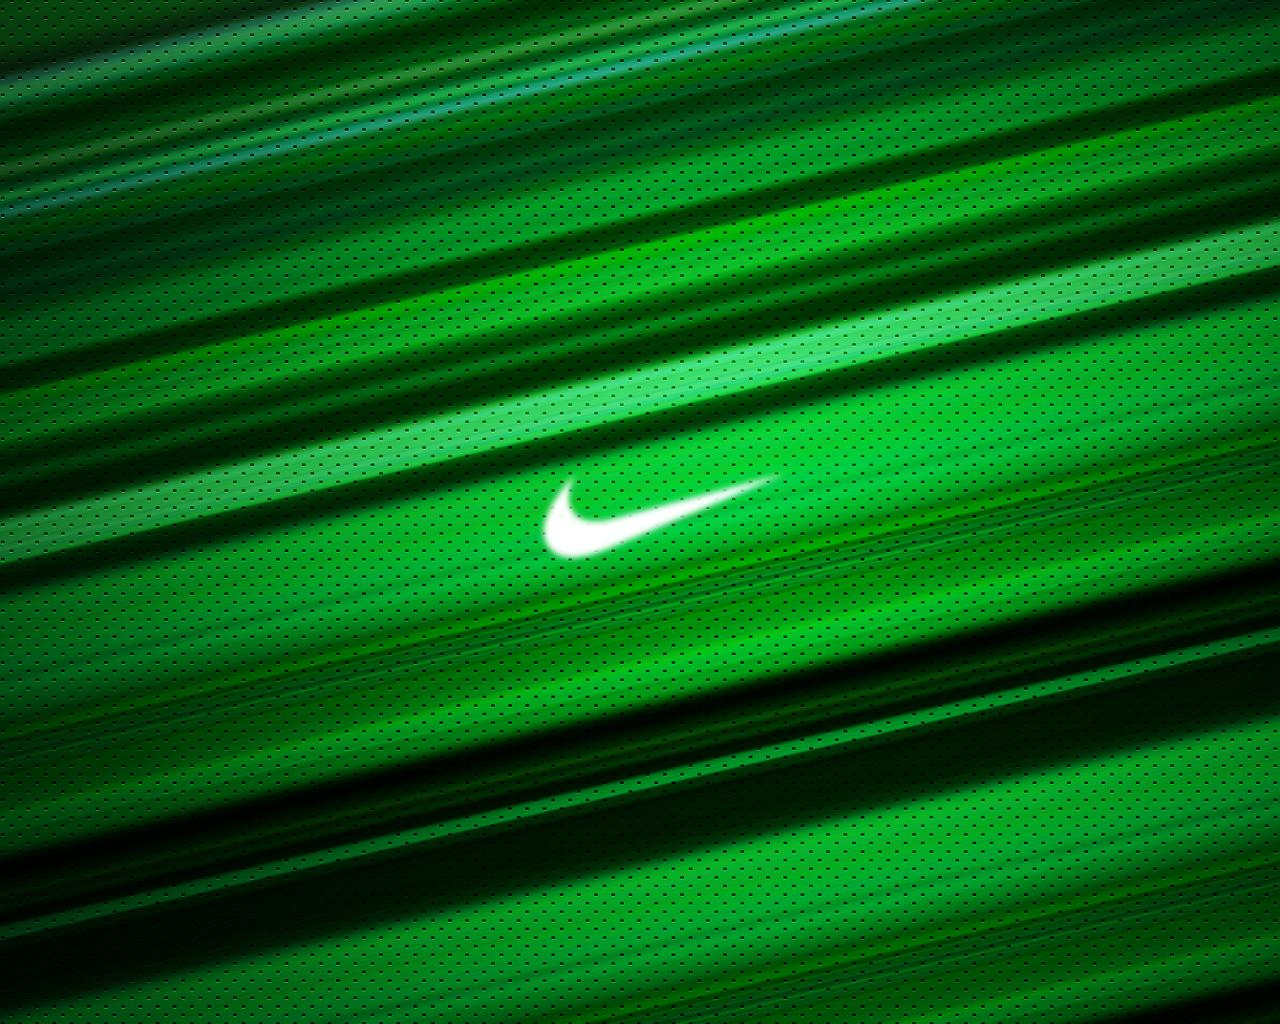 HD wallpaper Nike Ultimate Green Wallpaper By Opium Hd Wallpapers by 1280x1024